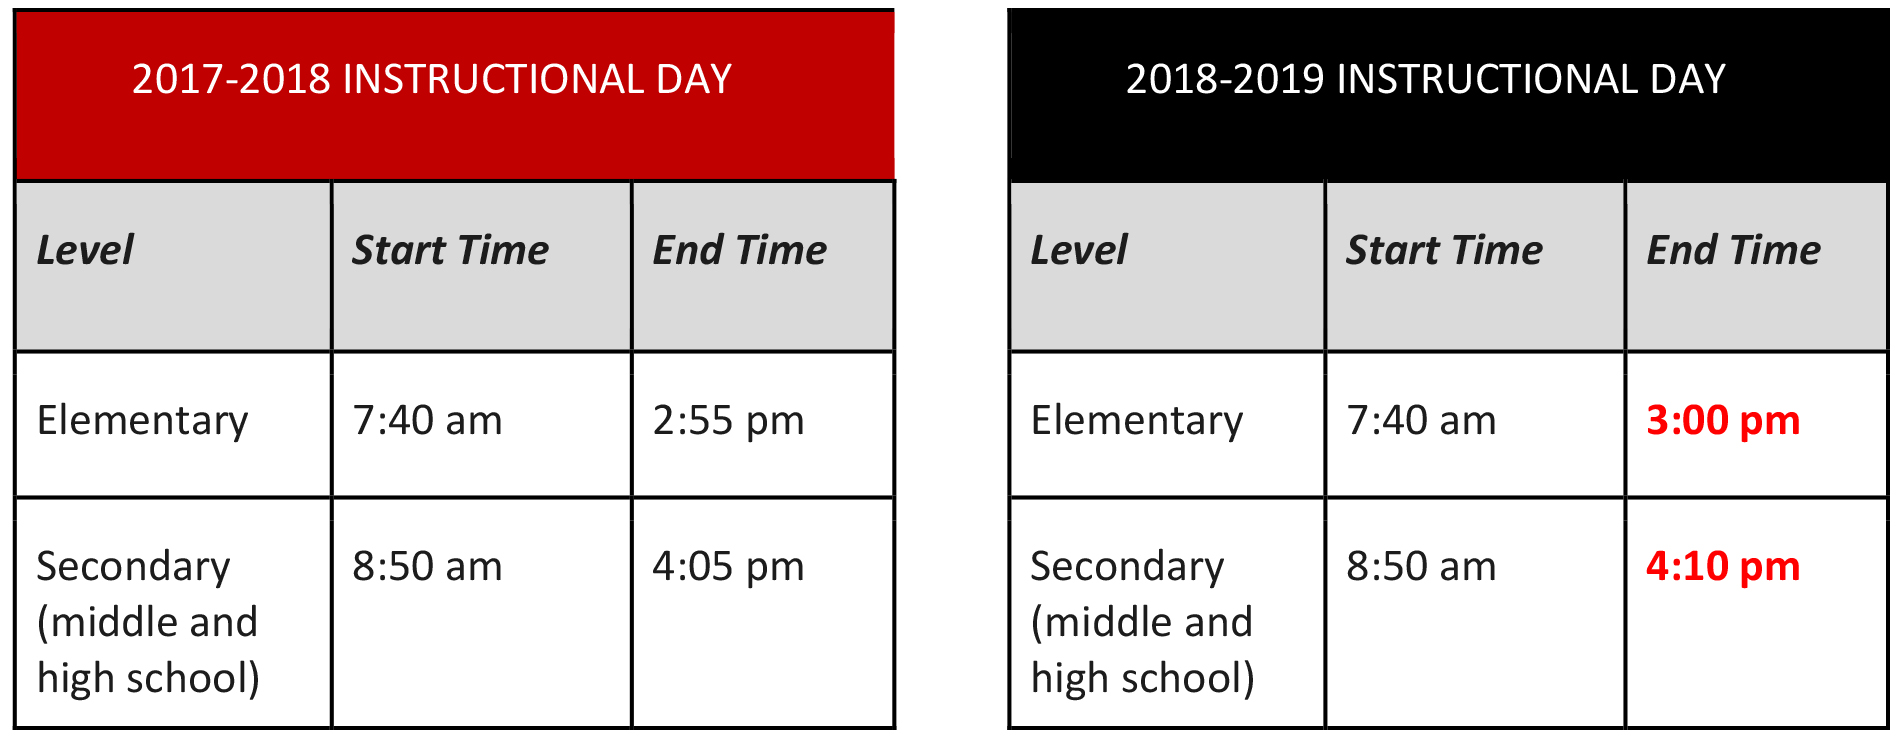 Five Minutes to Instructional Day Fall 2018_Graphic.jpg